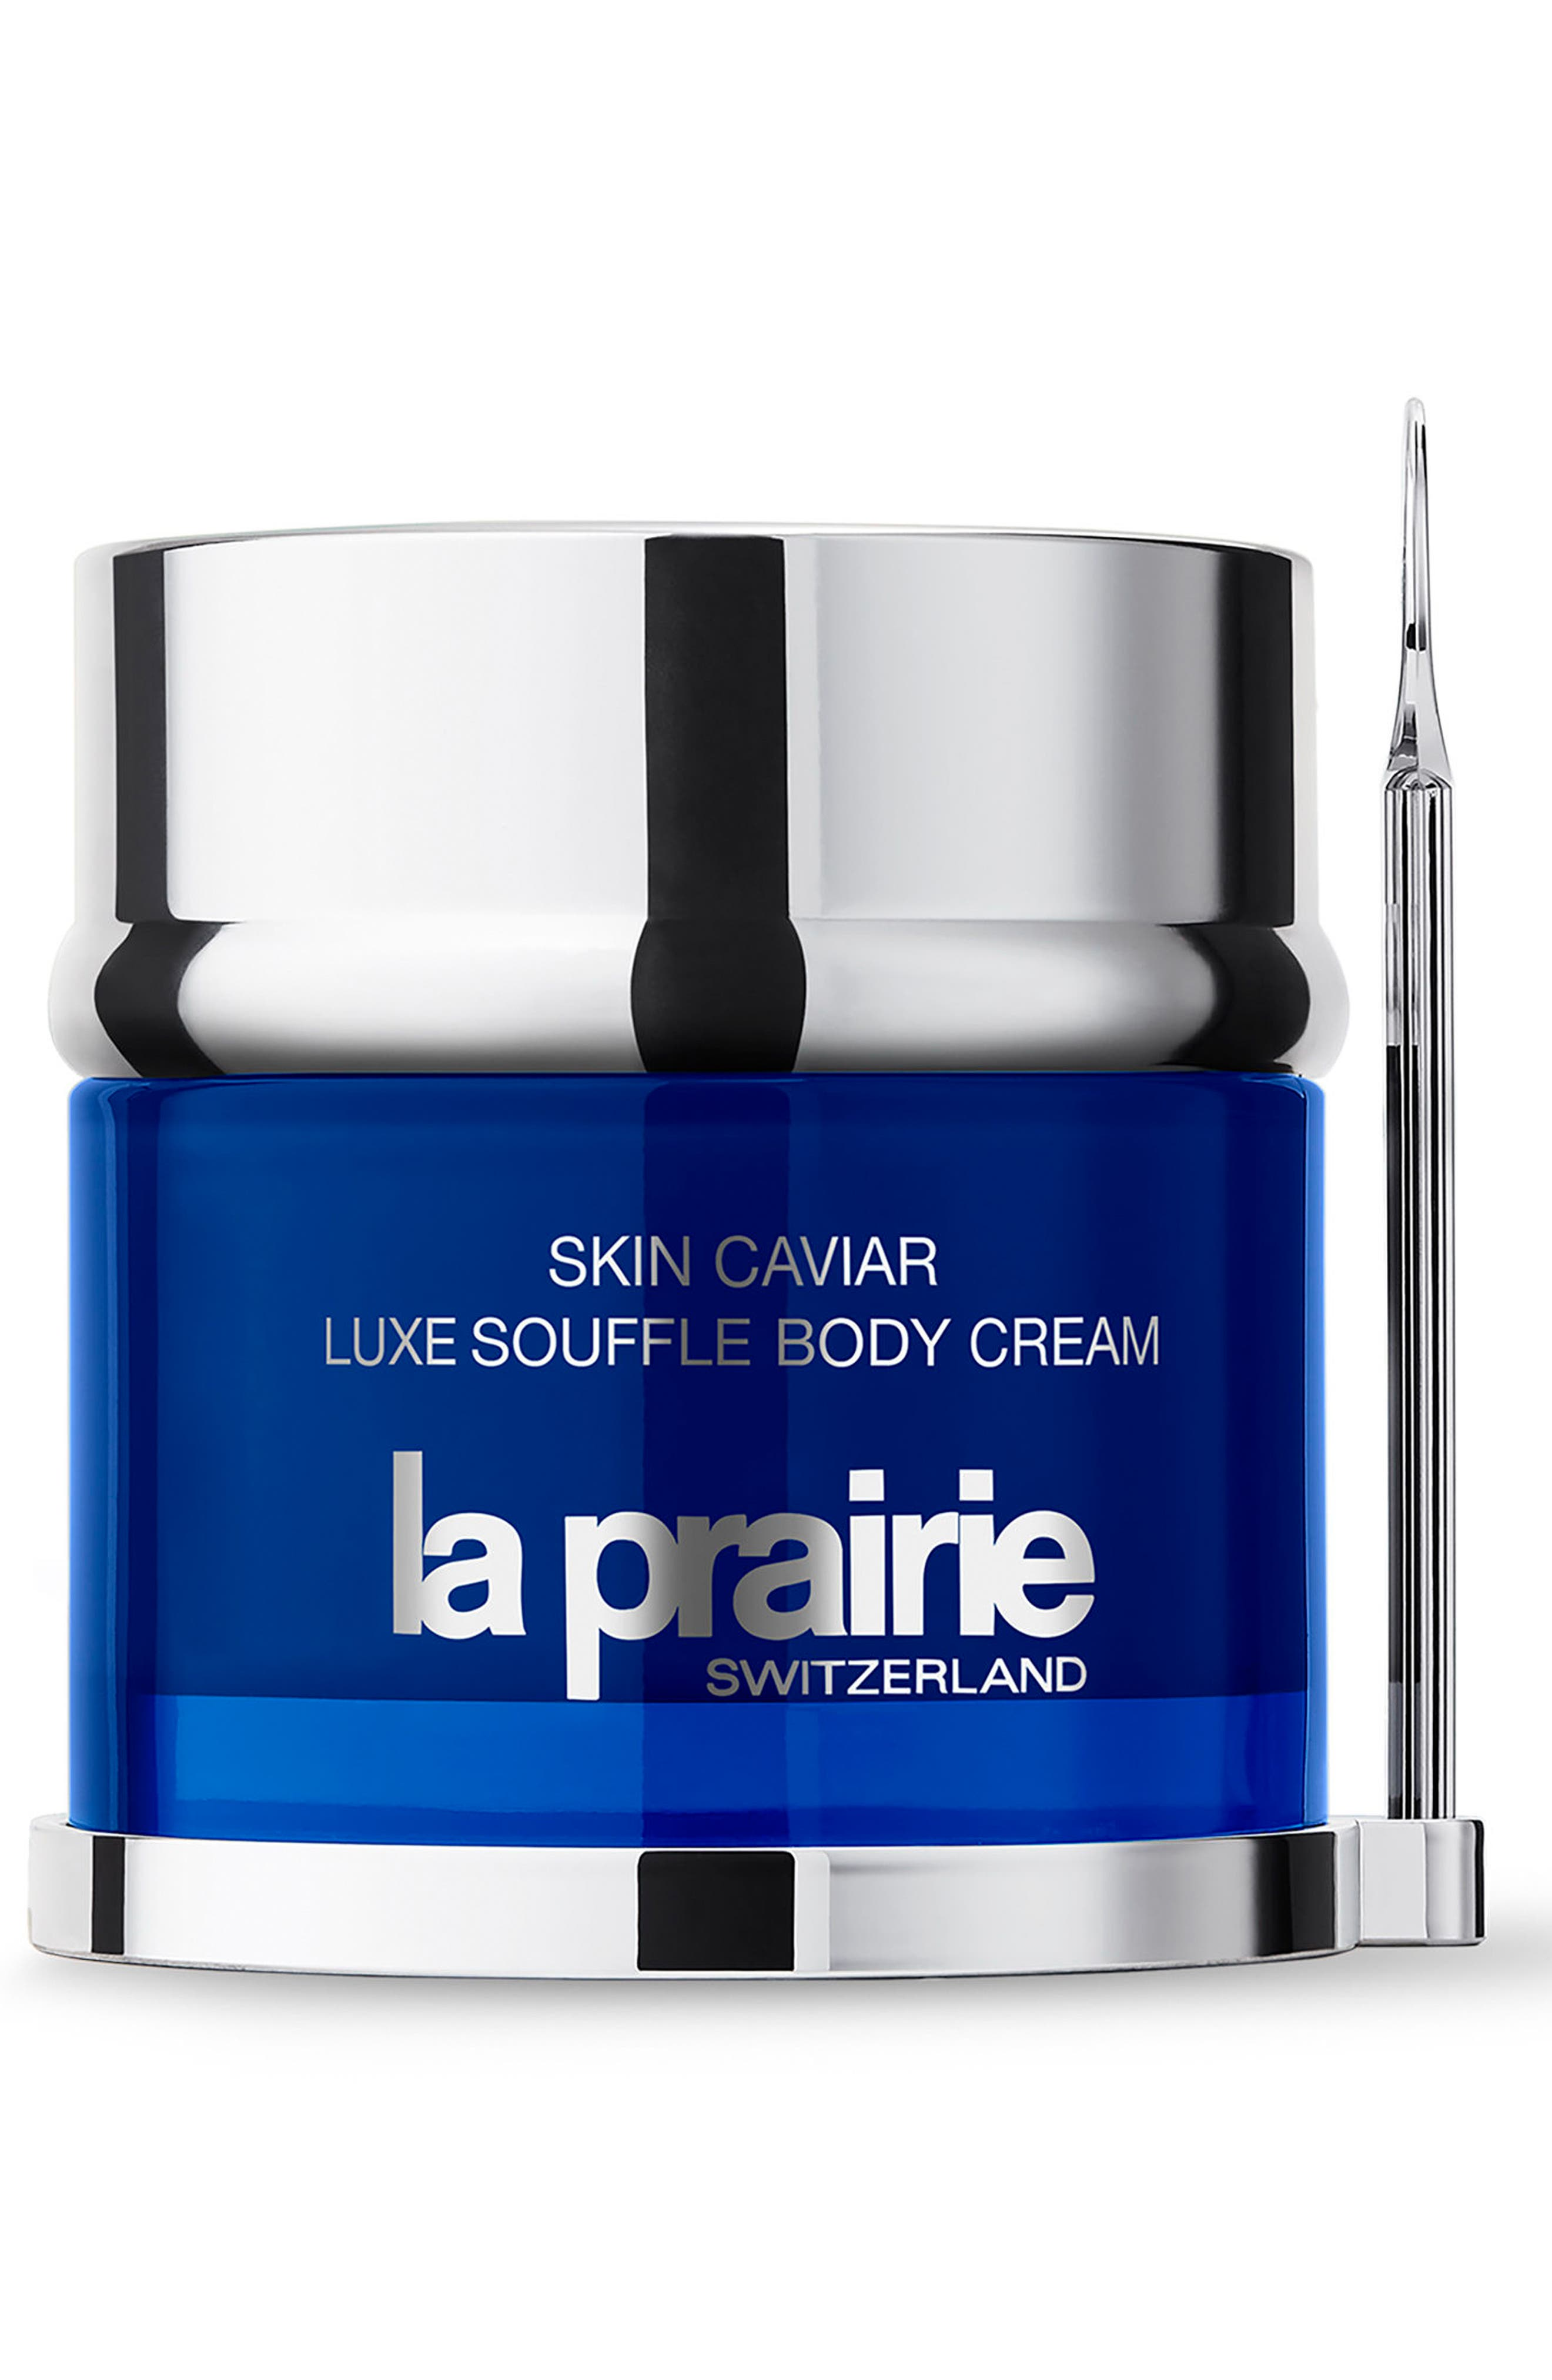 Skin Caviar Luxe Soufflé Body Cream,                             Main thumbnail 7, color,                             No Color